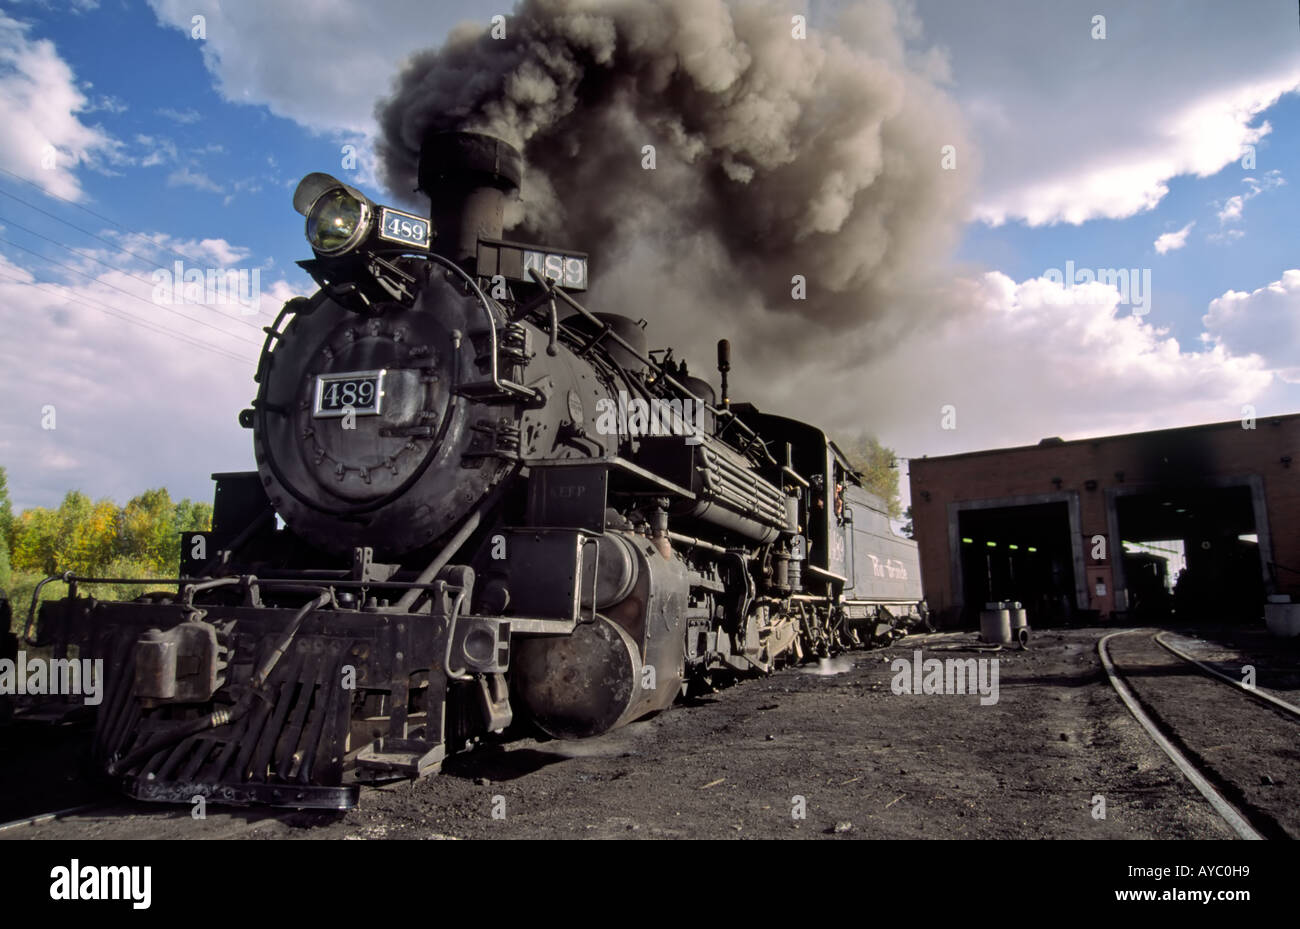 With much smoke, coal-fired steam engine 489 pulls out of the roundhouse in  Chama, New Mexico.